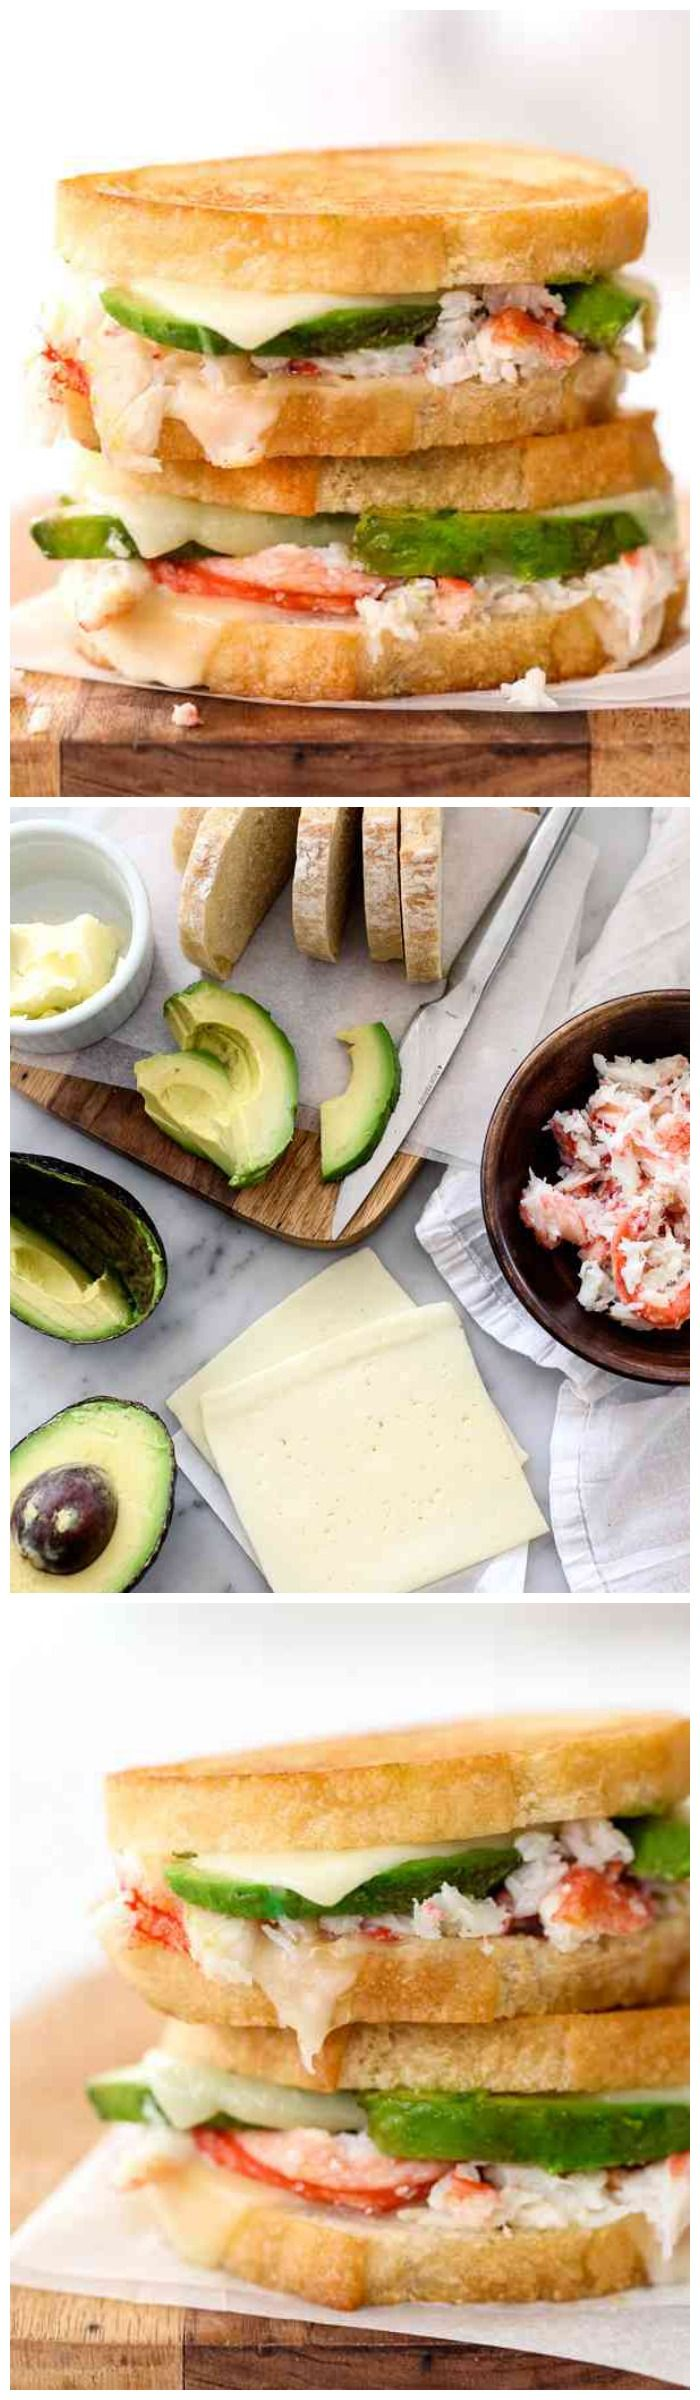 Crab and Avocado Grilled Cheese Sandwich  recipe on foodiecrush com  grilledcheese  avocado